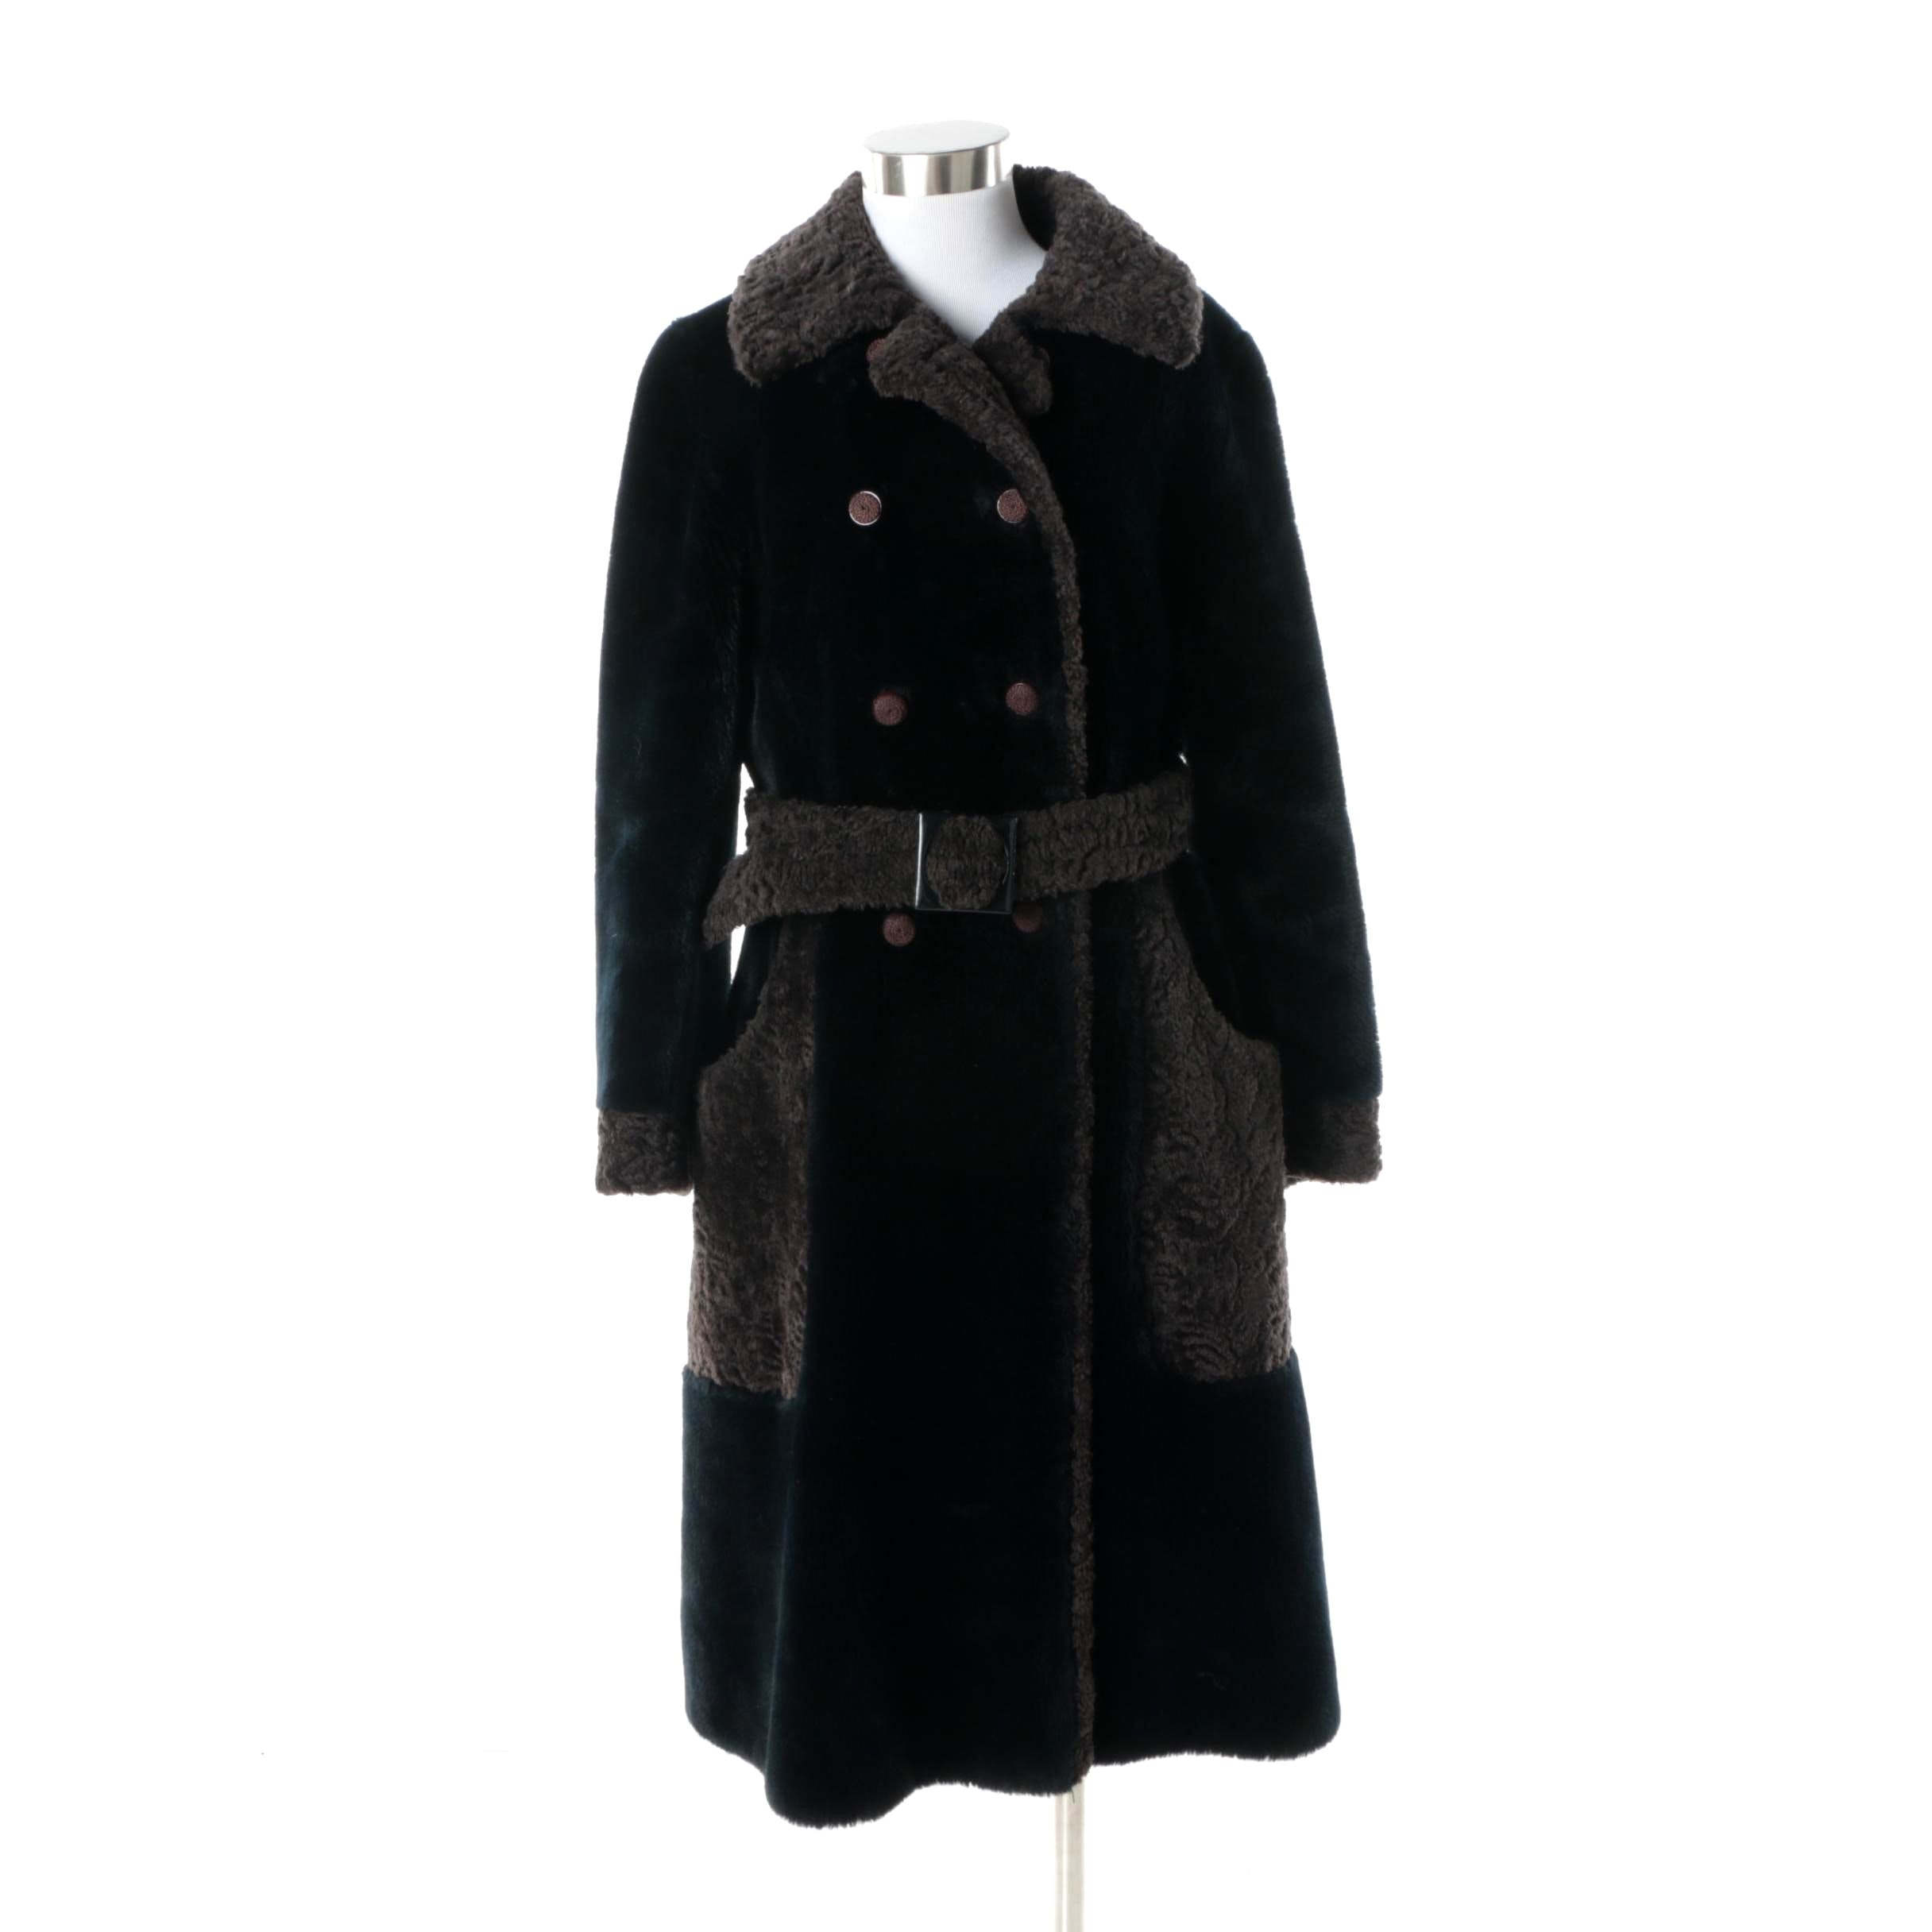 Vintage Borgana Double-Breasted Faux Fur Coat